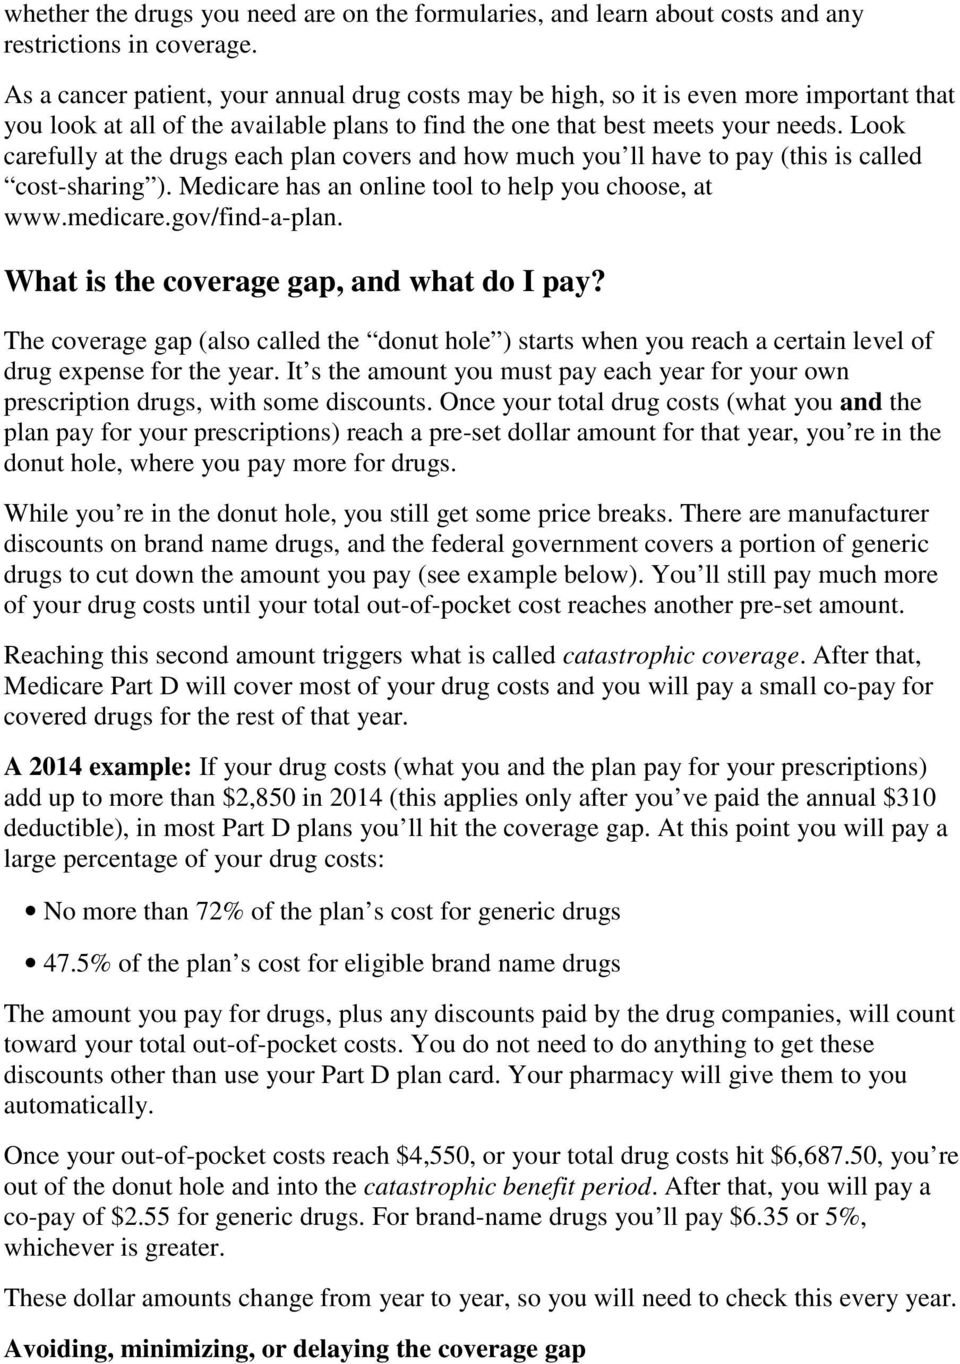 Look carefully at the drugs each plan covers and how much you ll have to pay (this is called cost-sharing ). Medicare has an online tool to help you choose, at www.medicare.gov/find-a-plan.